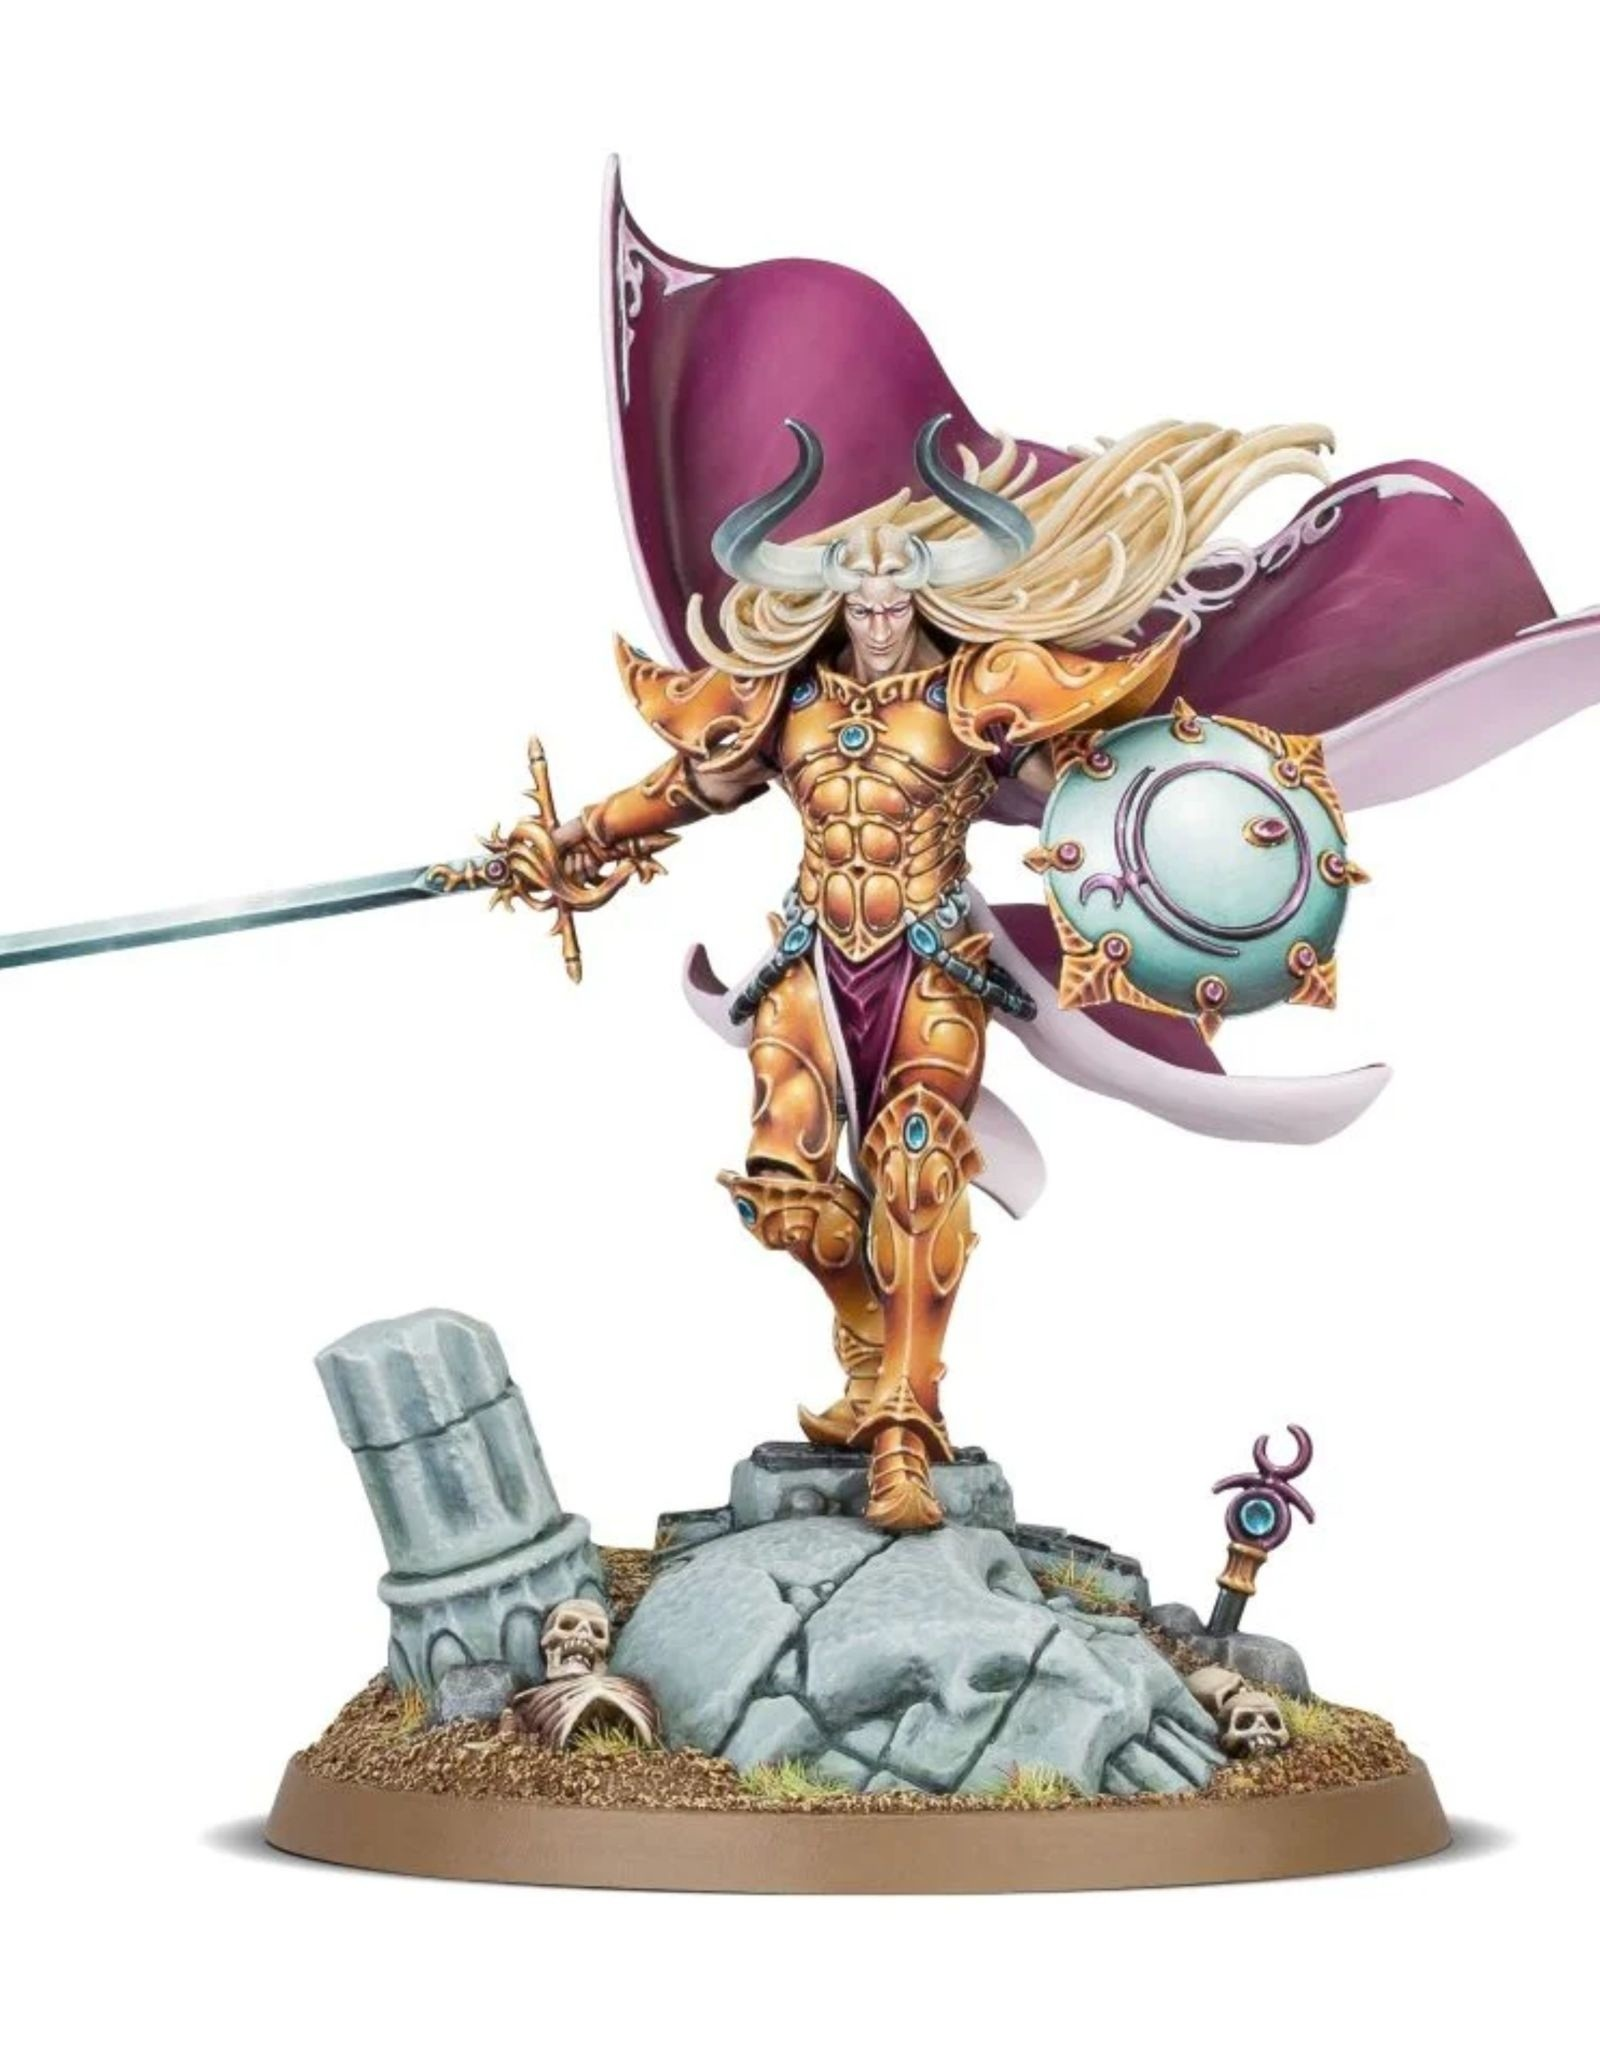 Age of Sigmar Sigvald Prince of Slaanesh